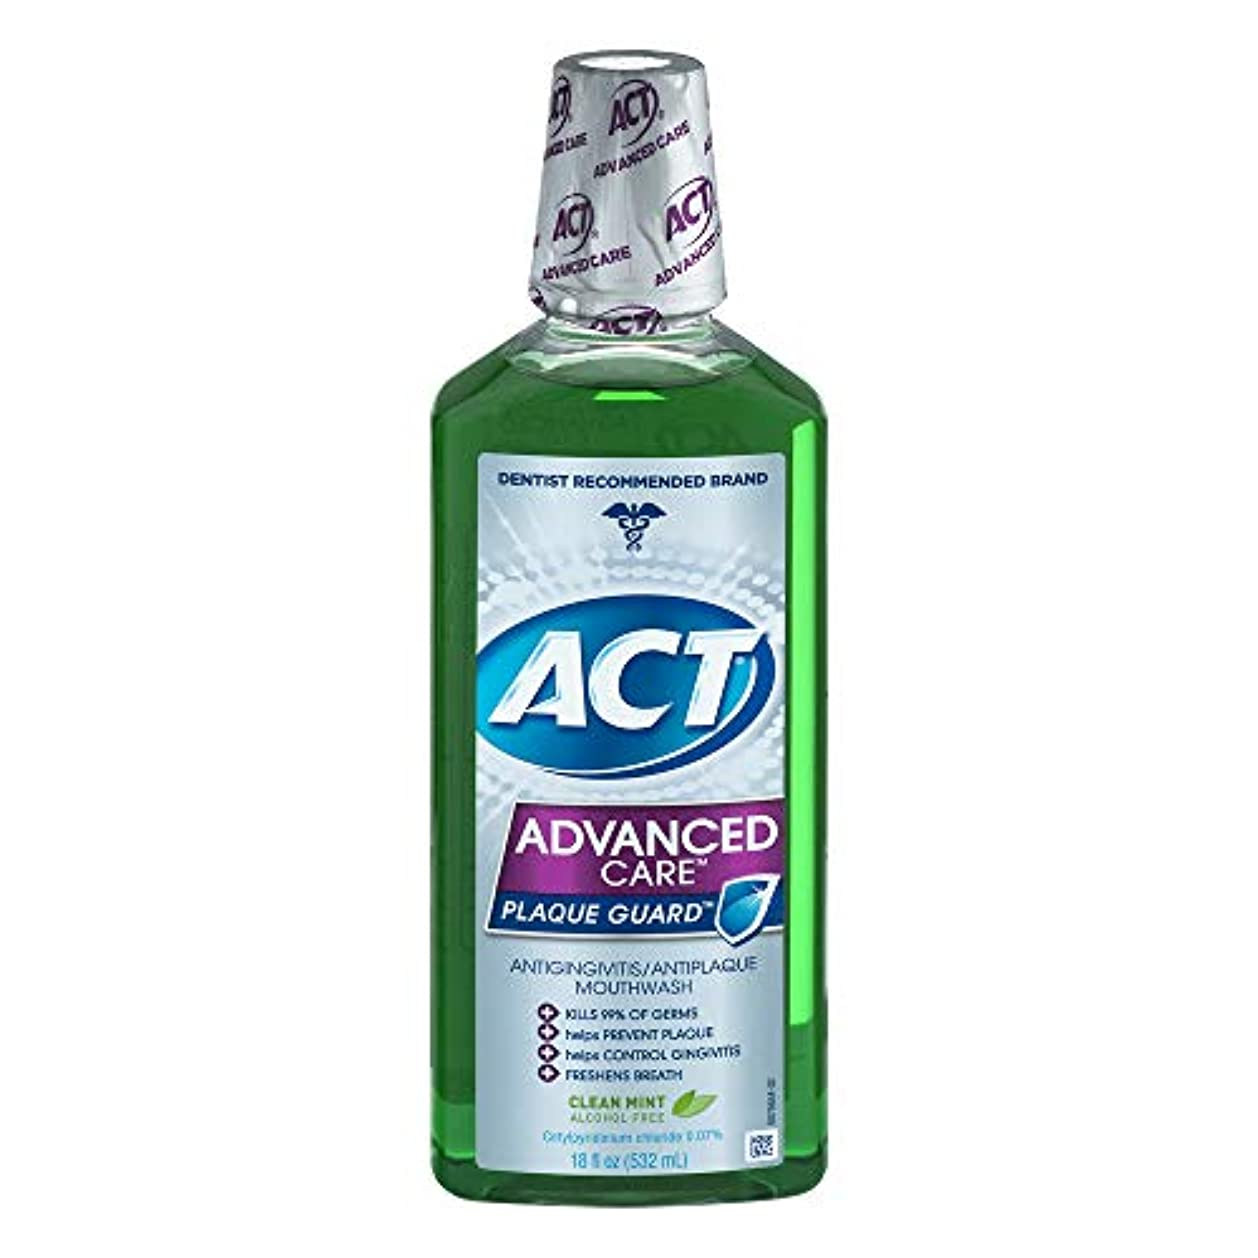 ACT Advanced Care Plaque Guard Mouthwash, Clean Mint 18 oz Pack of 3 by ACT